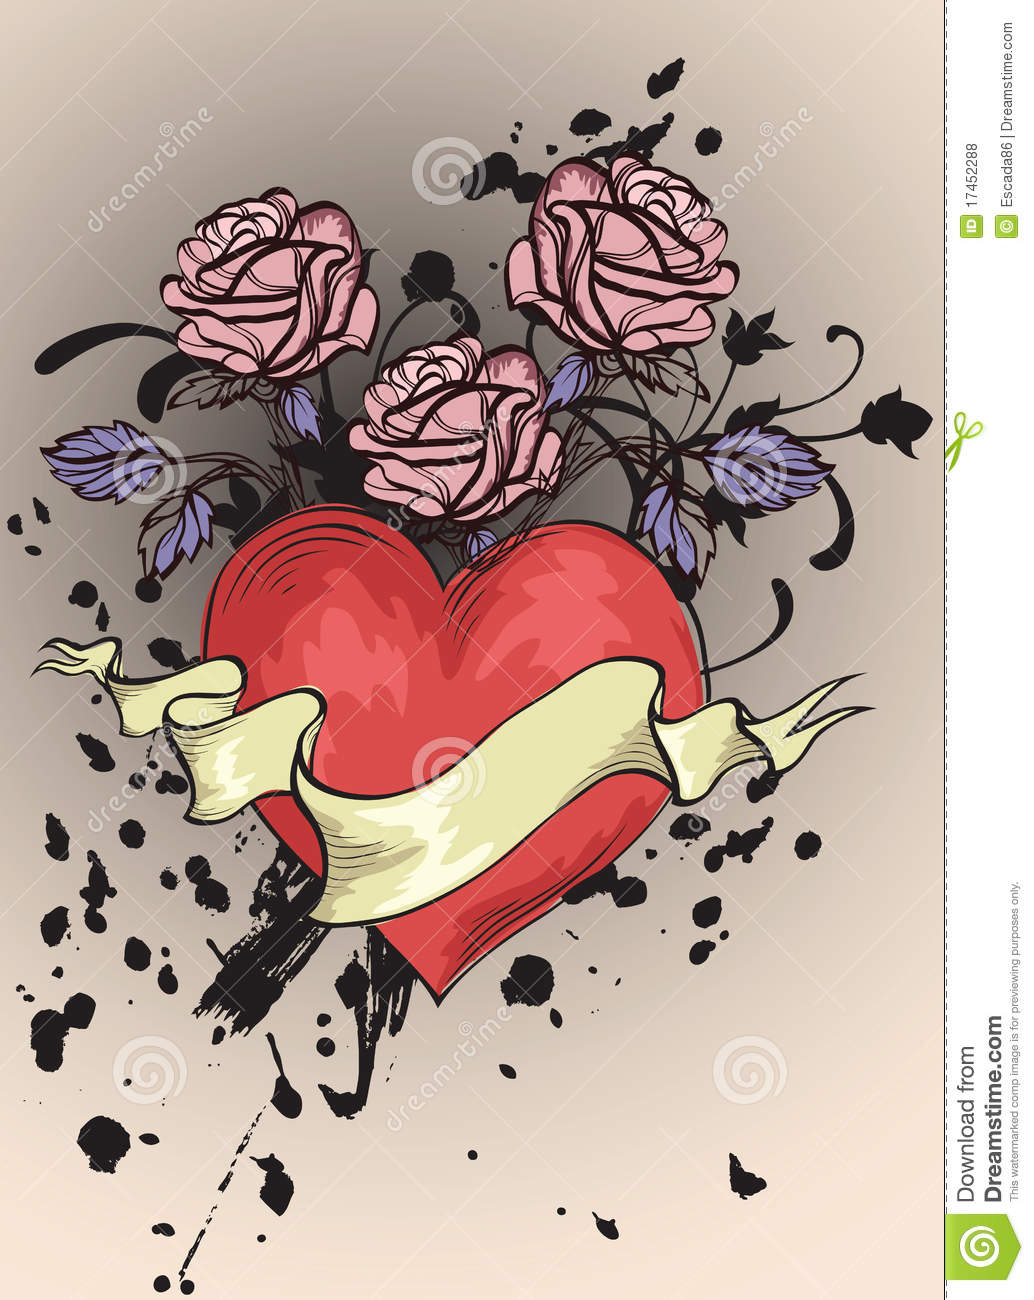 Heart With Rose And Banner: Red Heart, Banner And Roses Royalty Free Stock Photos